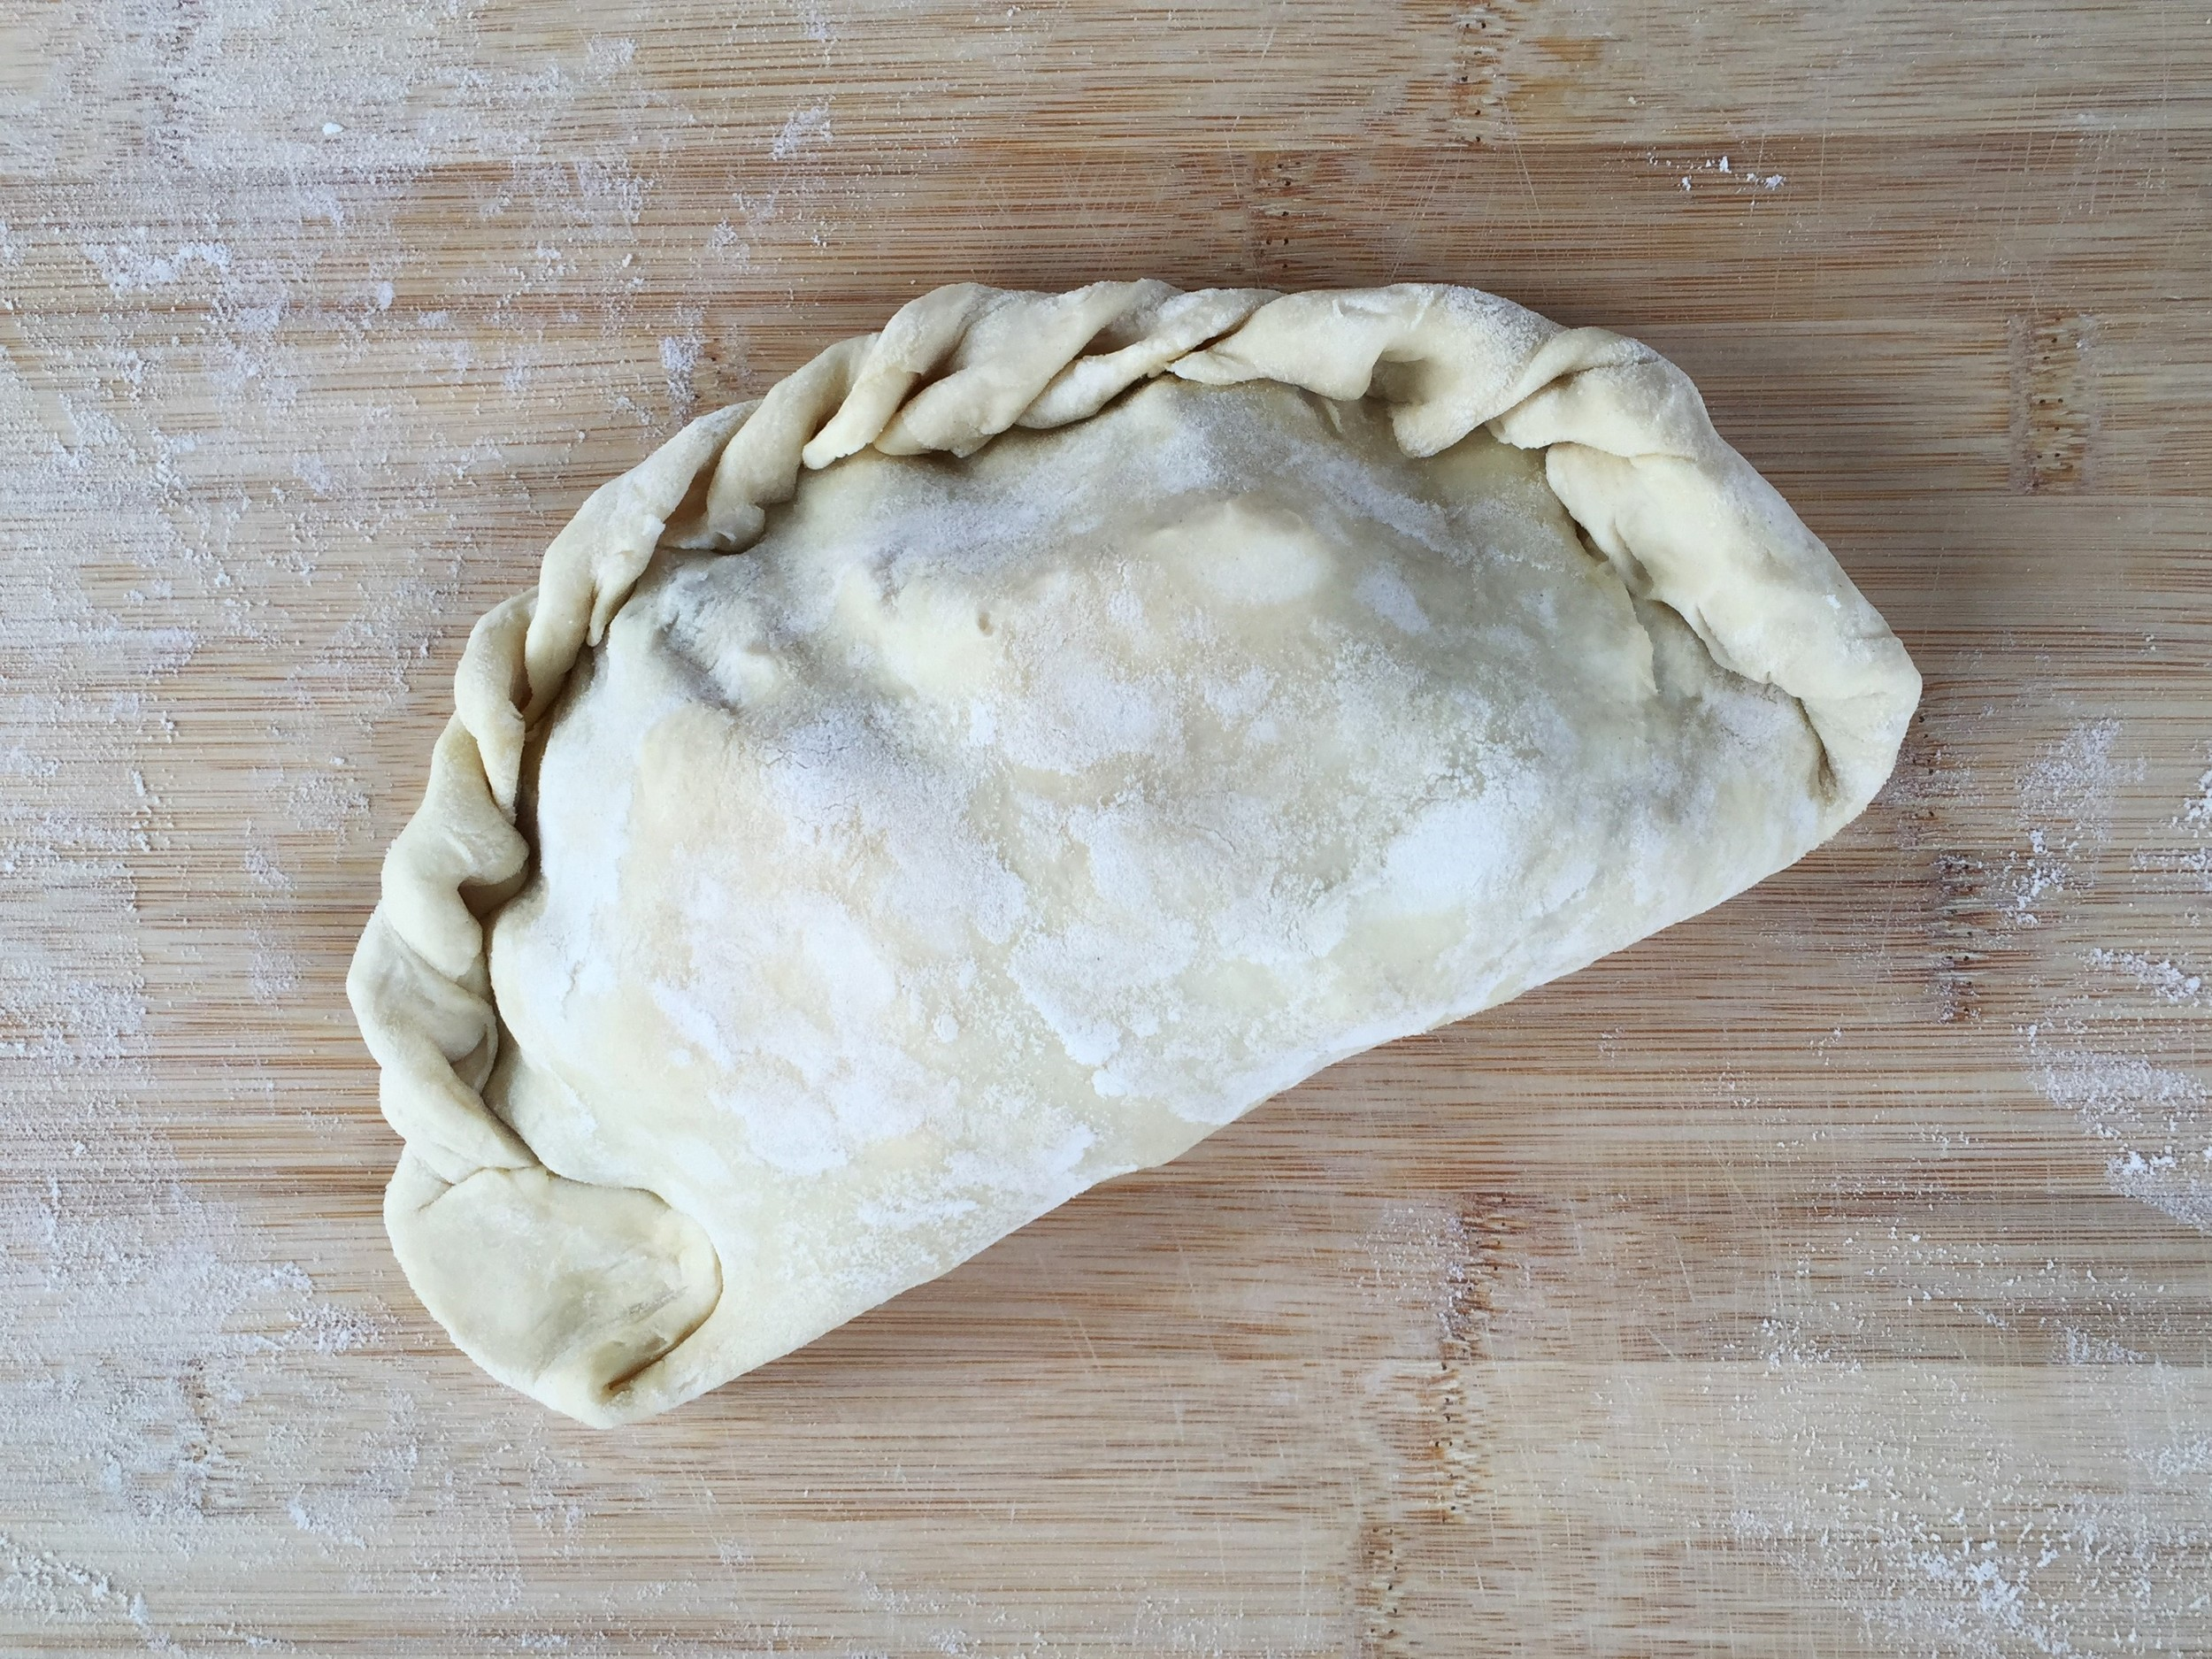 Finished Cornish Pasty should resemble a letter D.